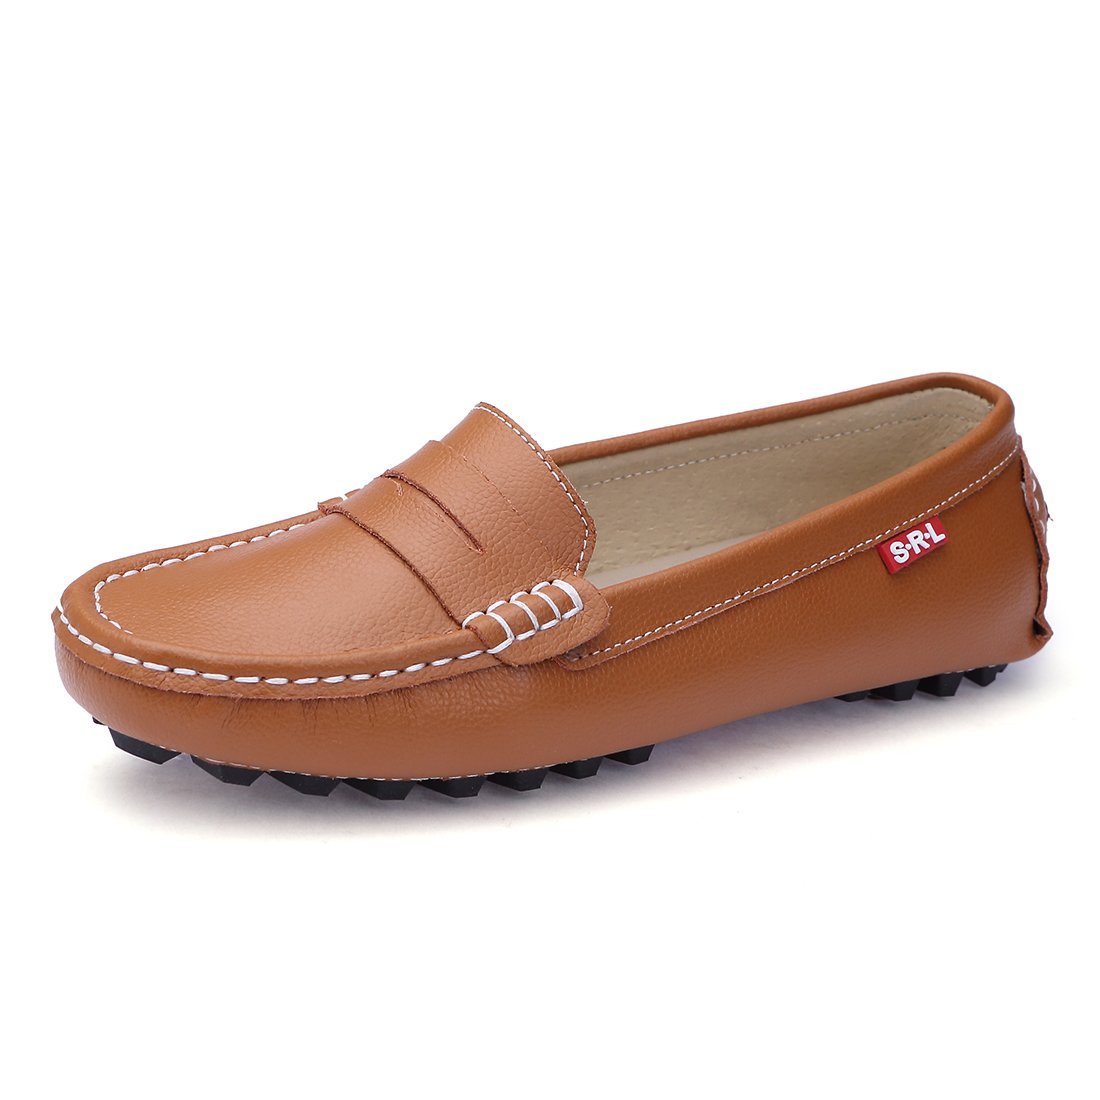 SUNROLAN Casual Women's Genuine Leather Penny Loafers Driving Moccasins Slip-On Boat Flats Shoes 818